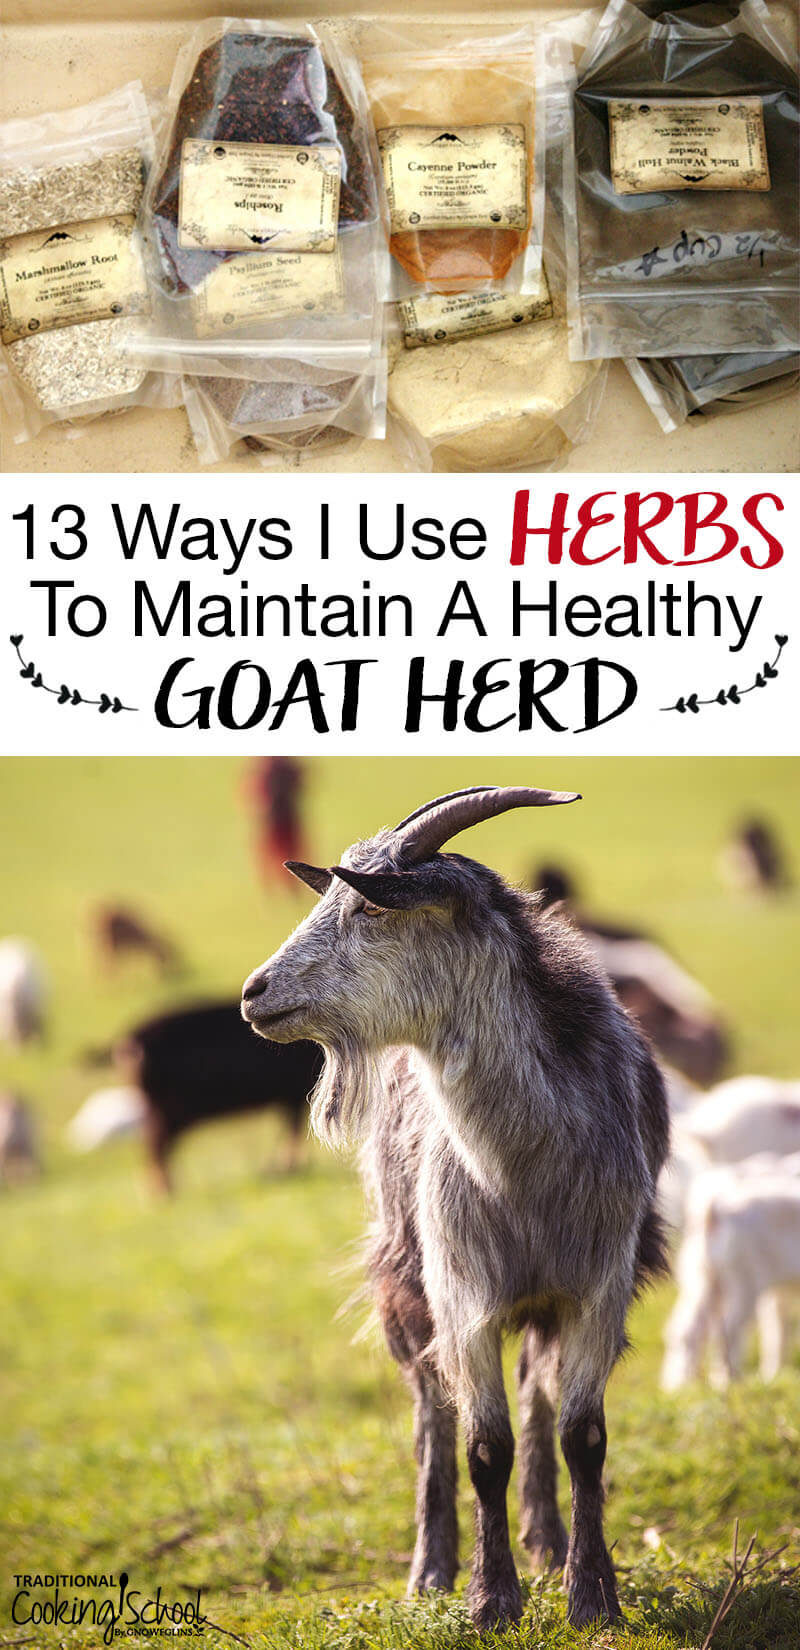 13 Ways I Use Herbs To Maintain A Healthy Goat Herd